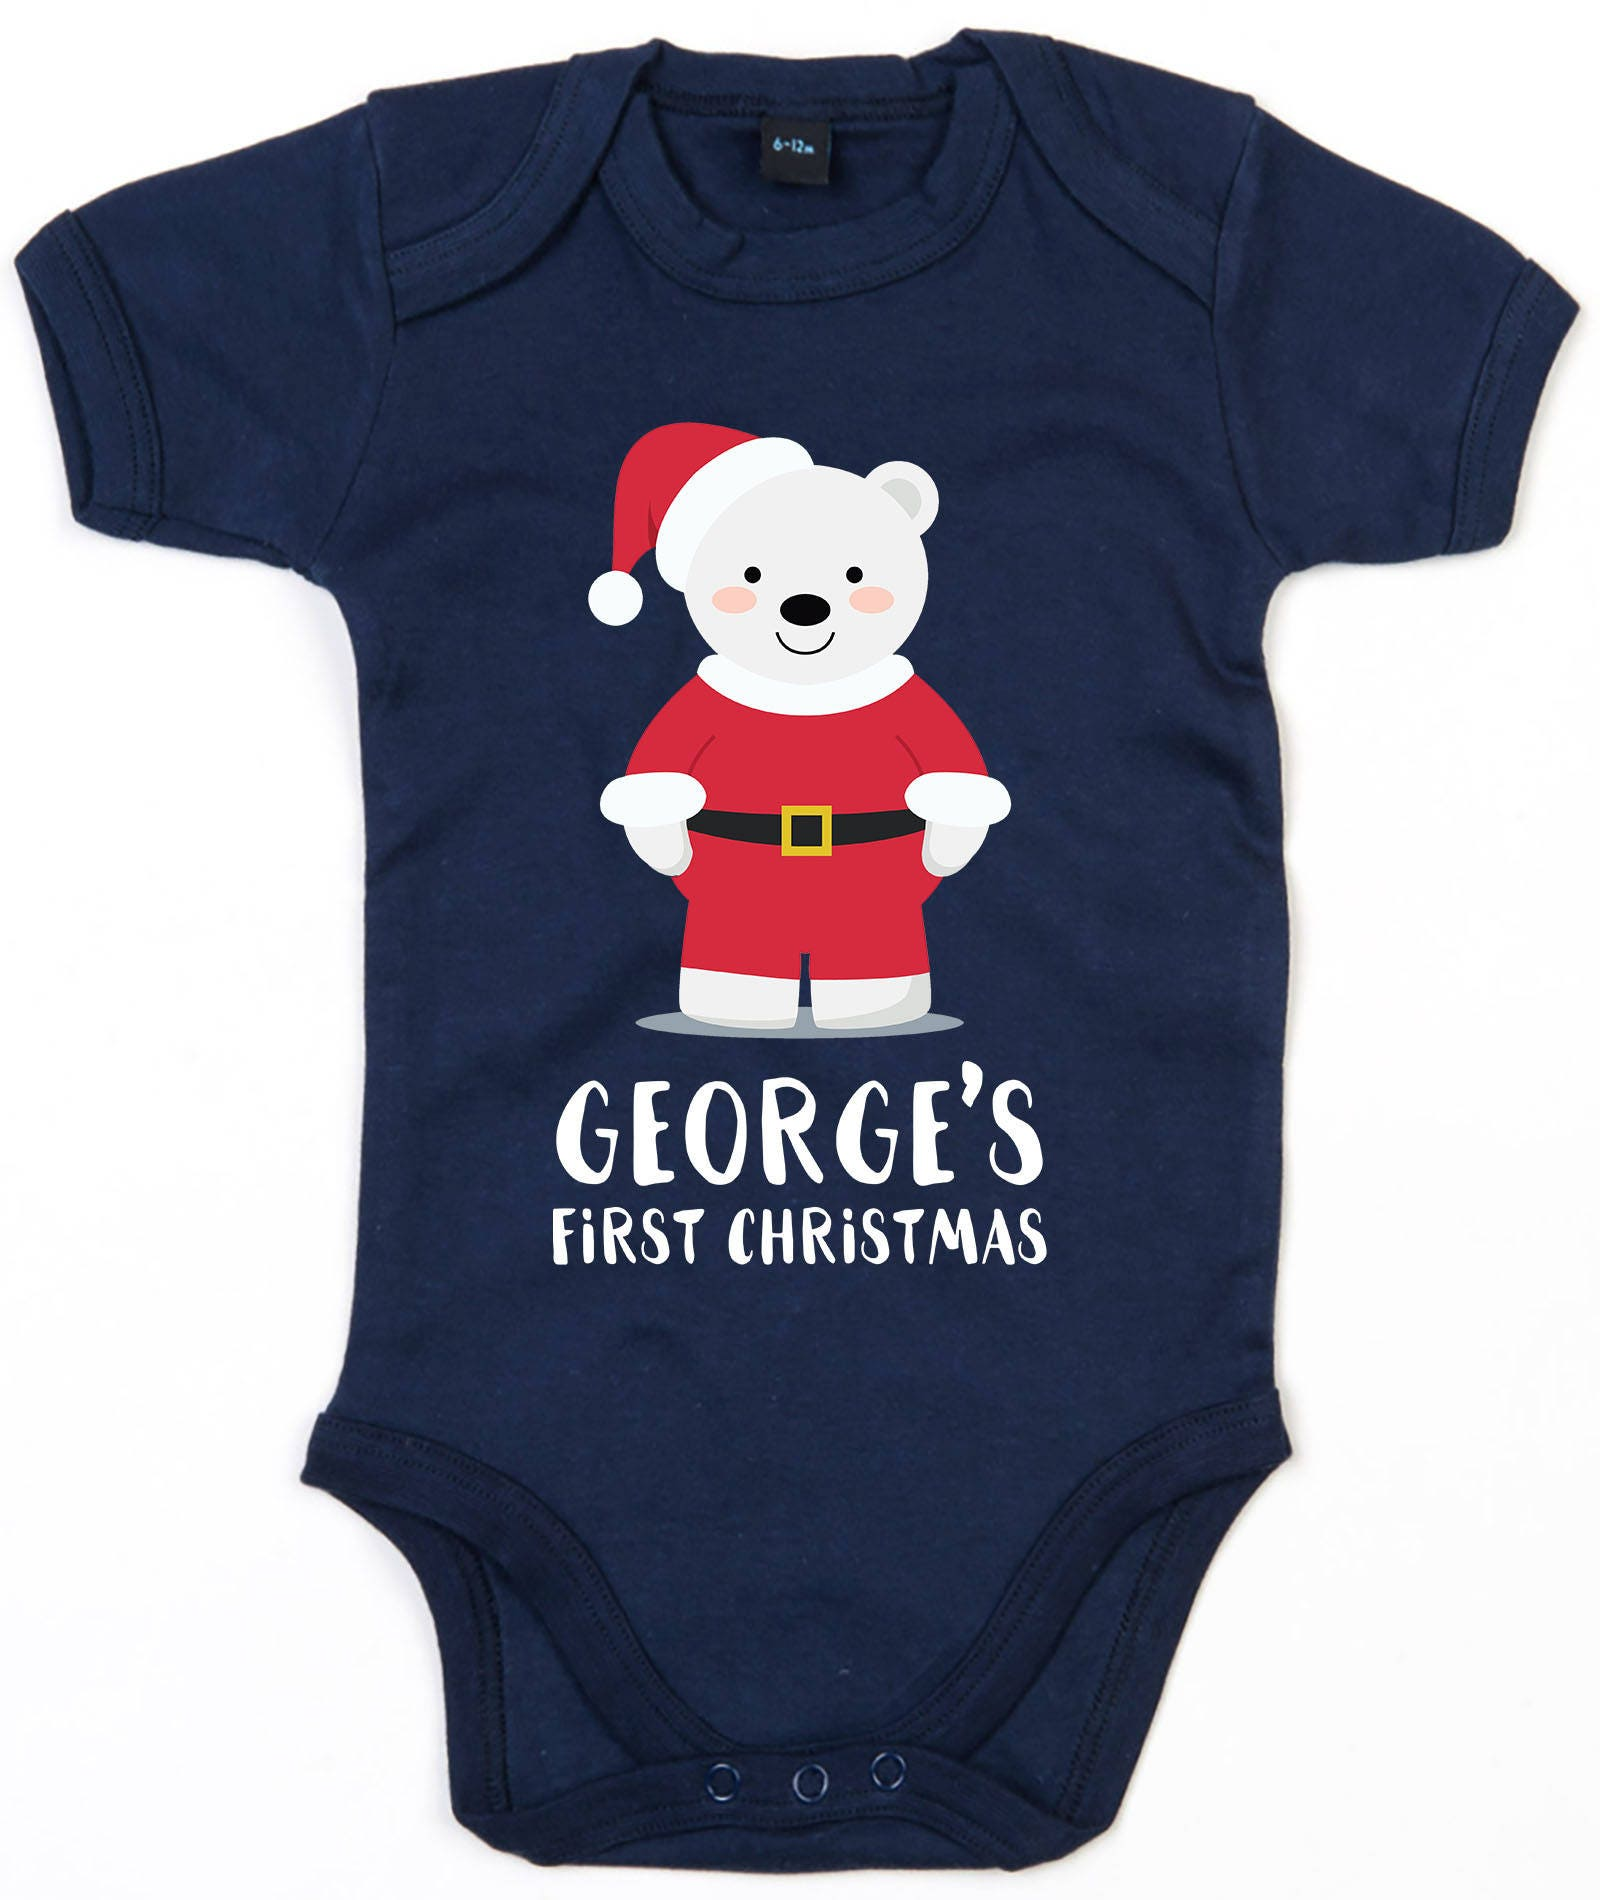 e801129149f12 Personalised First Christmas Baby Grow Cute 1st Xmas